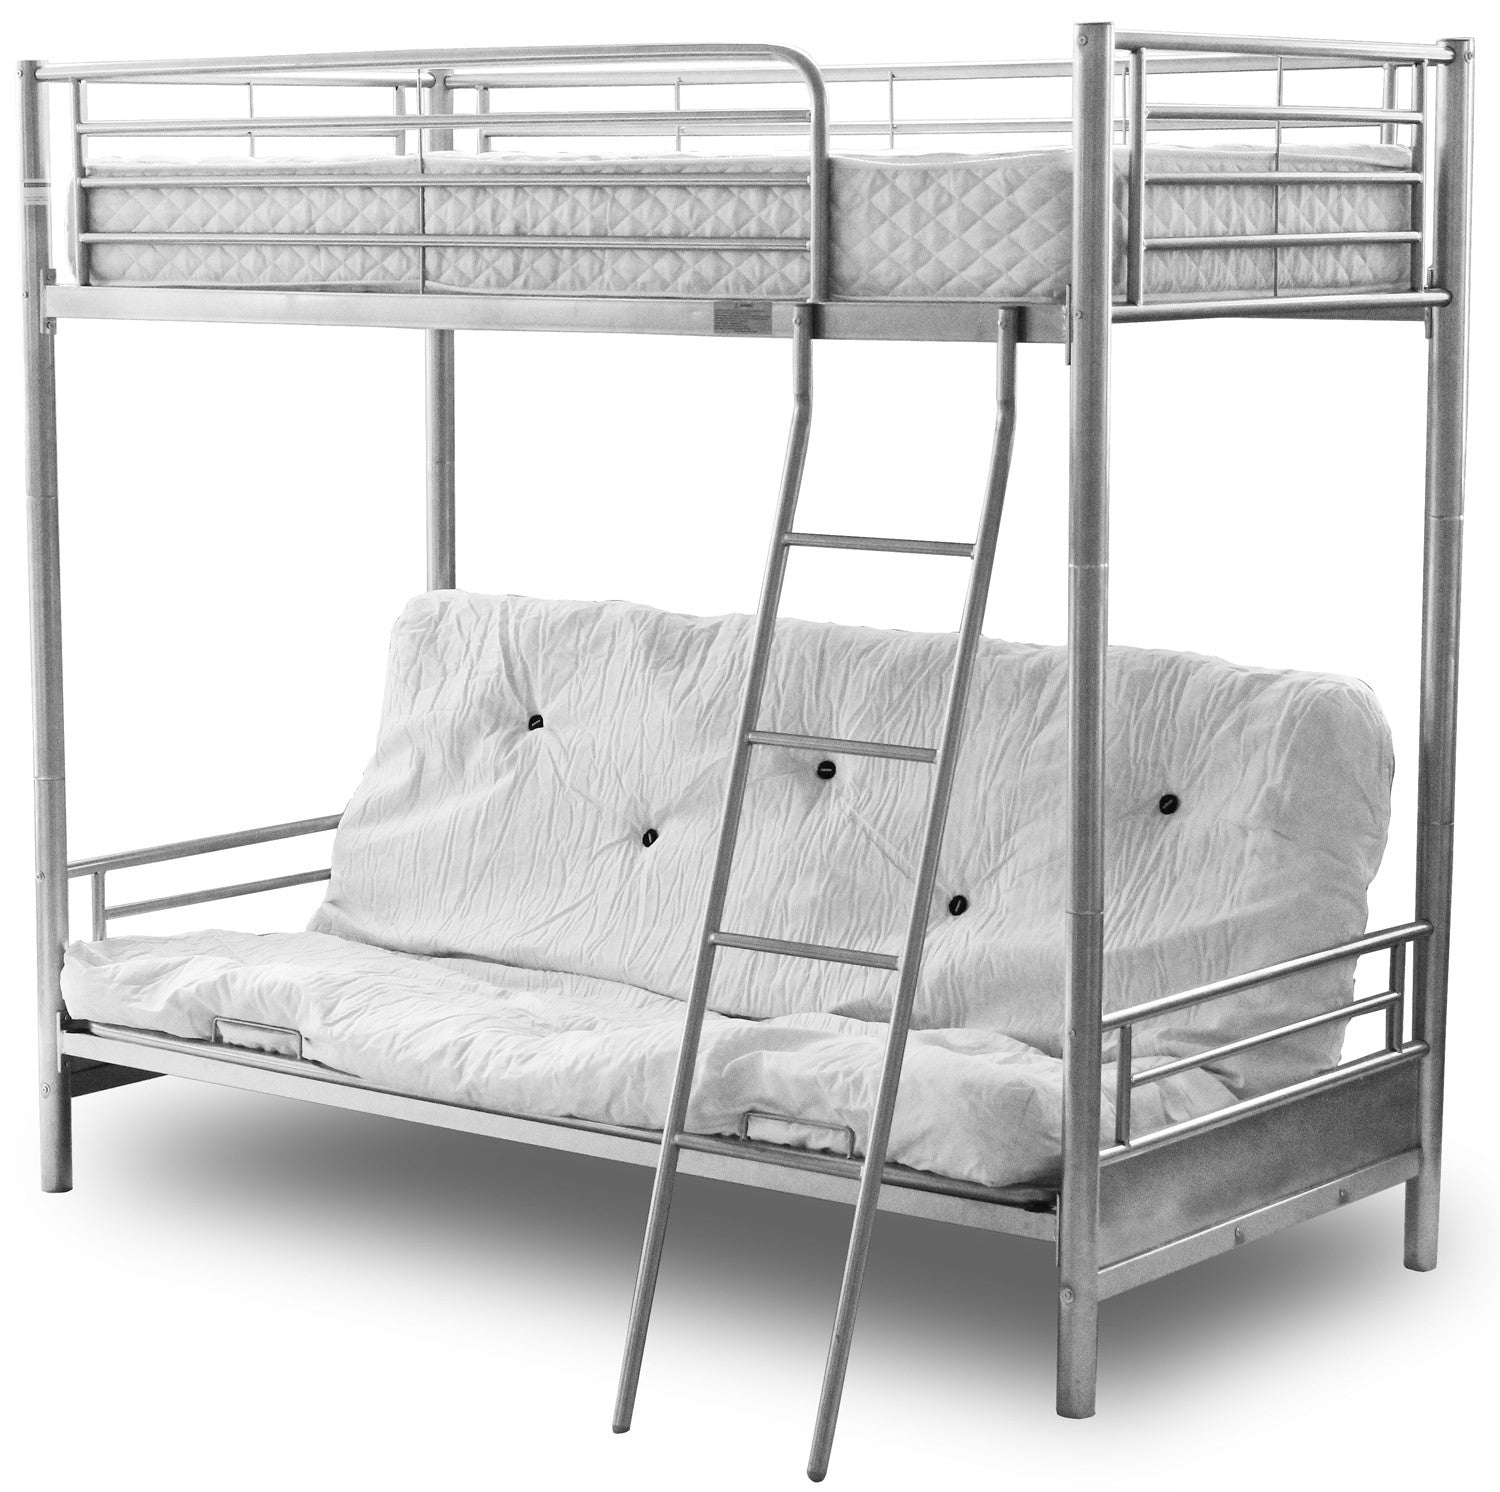 Alaska Modern Kids Futon Metal Bunk Bed Frame